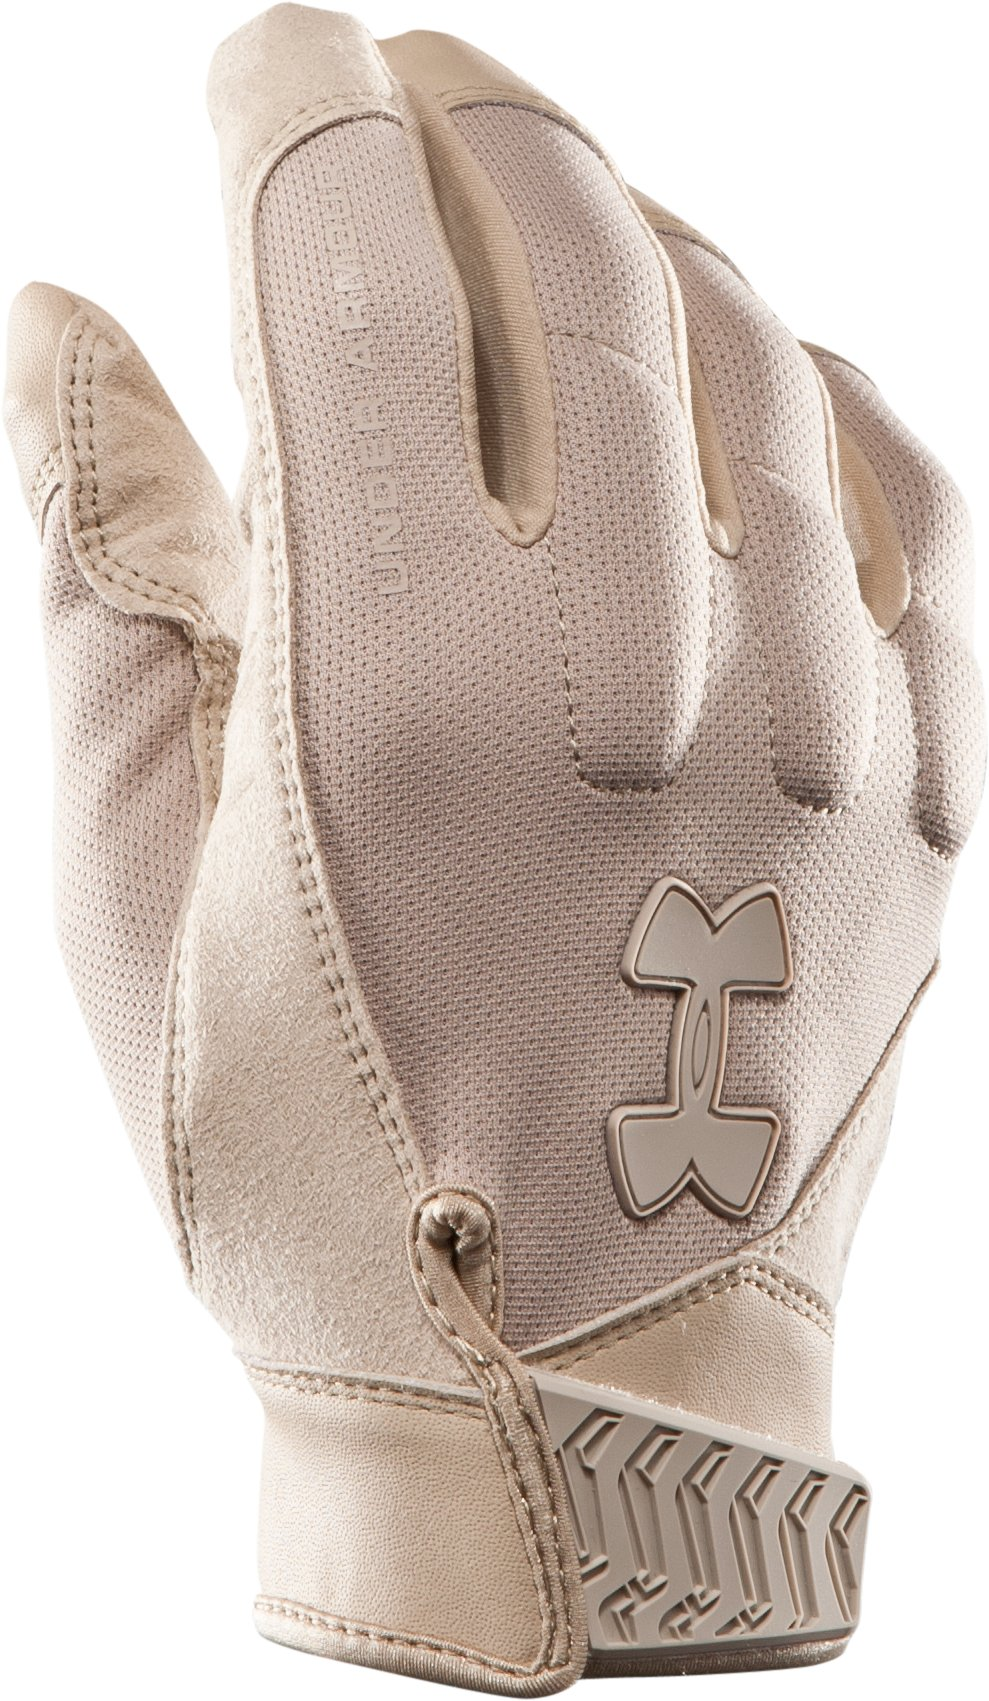 Men's Tactical Winter Blackout Glove, Desert Sand,